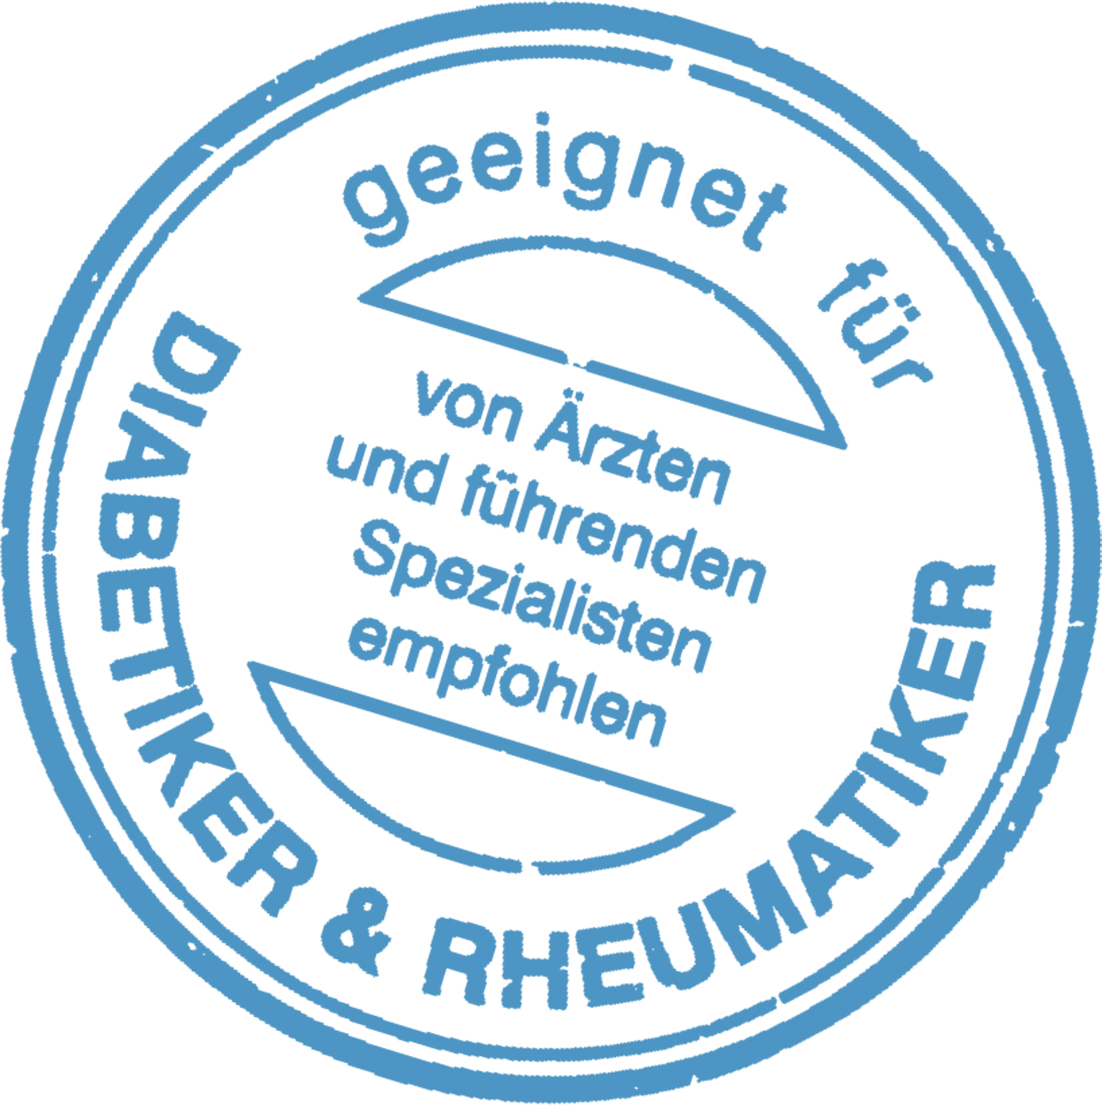 GANTER_SENSITIV_Stempel